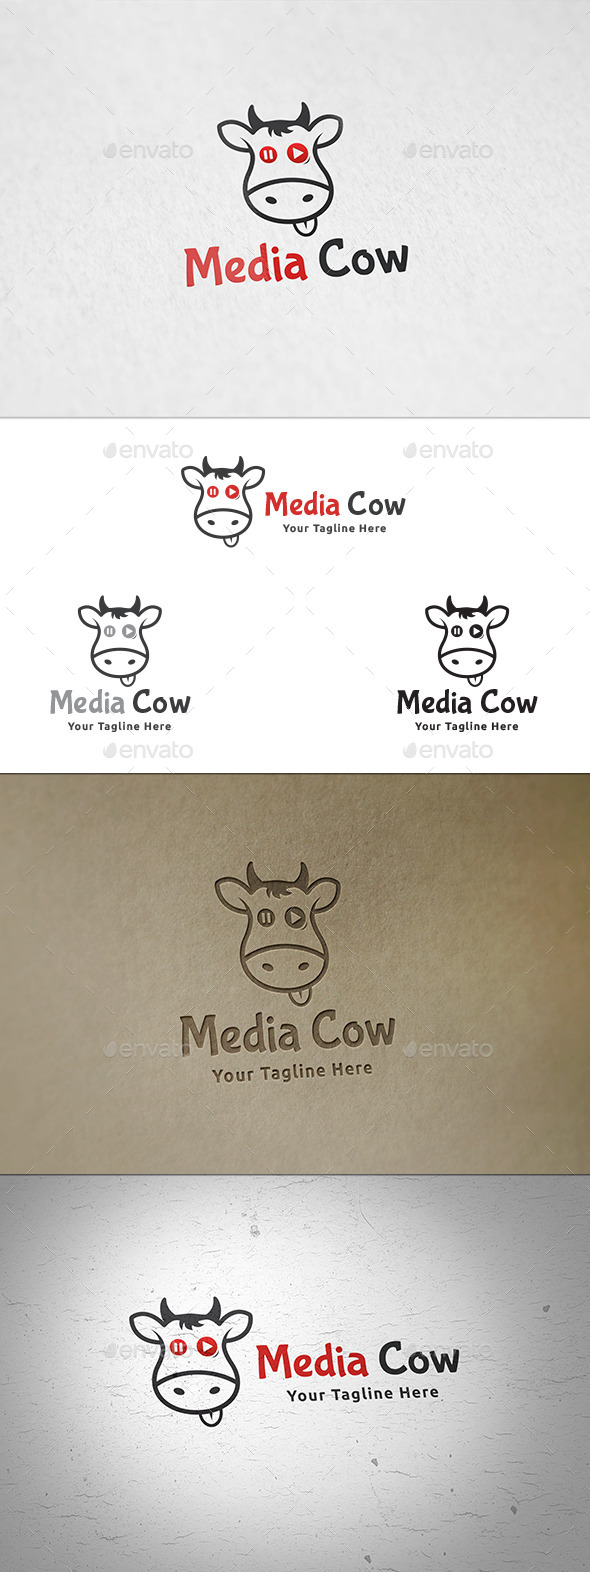 Media Cow Logo Template